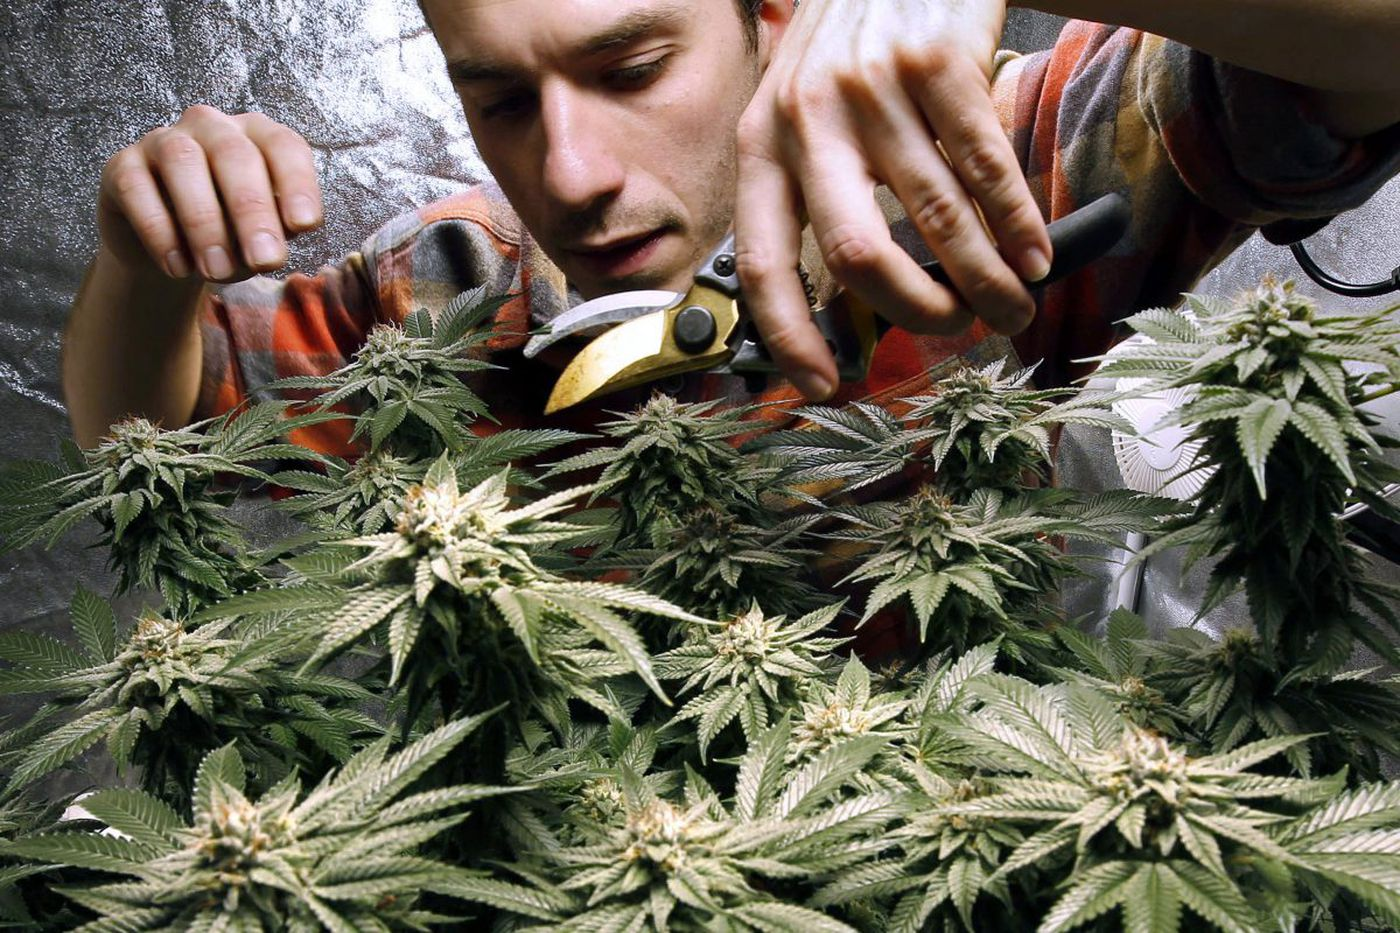 Vermont legalizes marijuana, but doesn't allow for a commercial industry